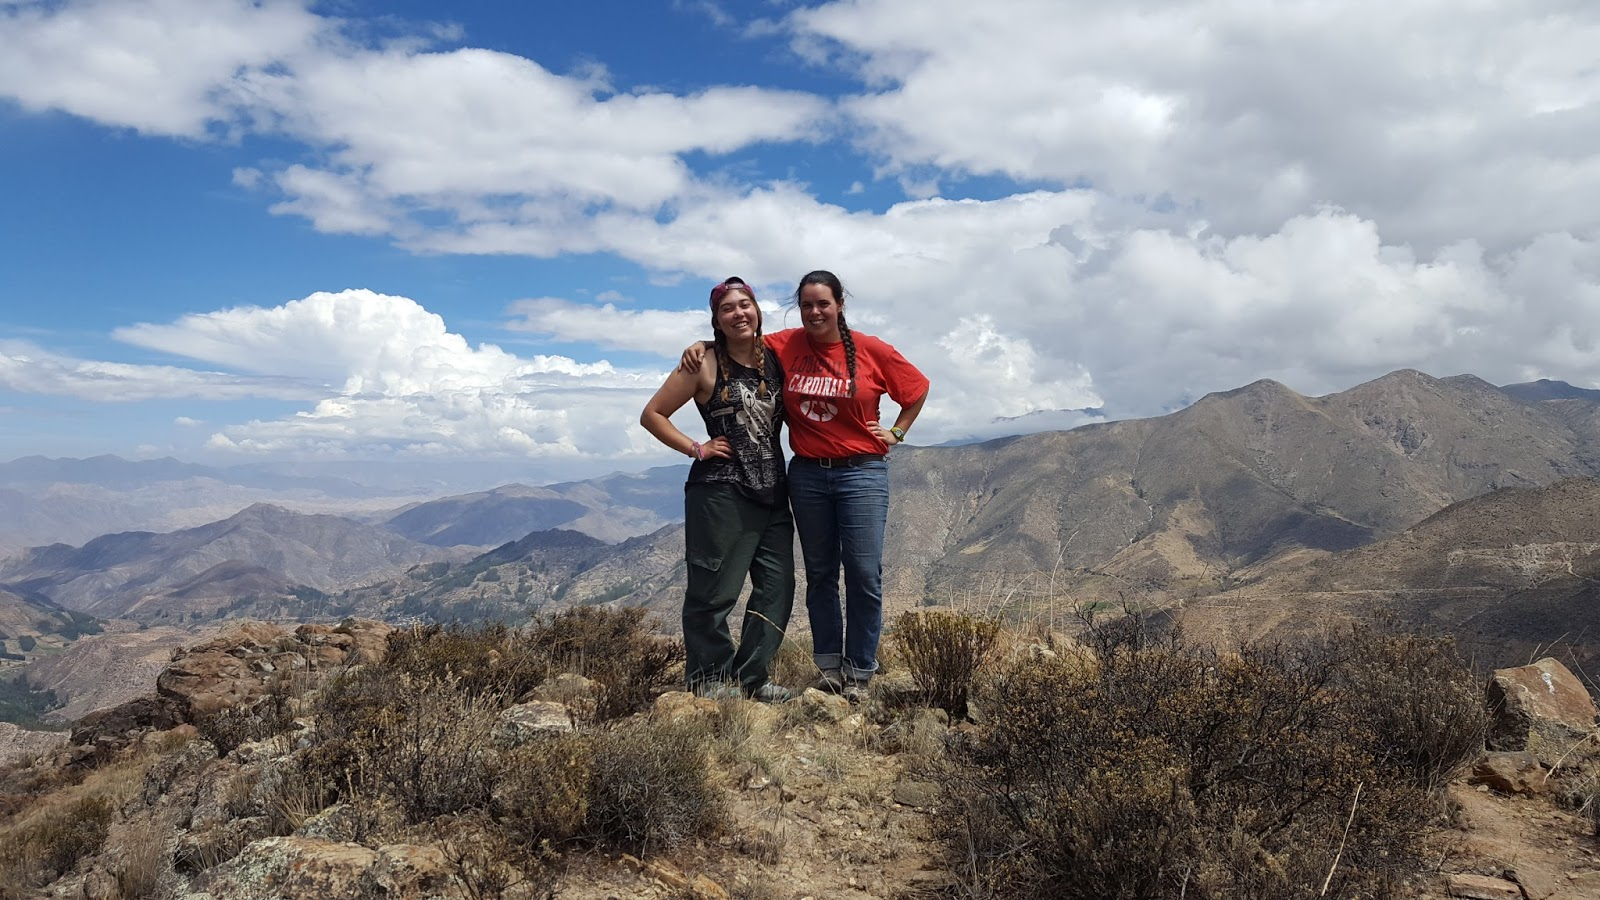 Faith and I stand together for a photo at the peak of a mountain, with a view of a mountain range behind us.